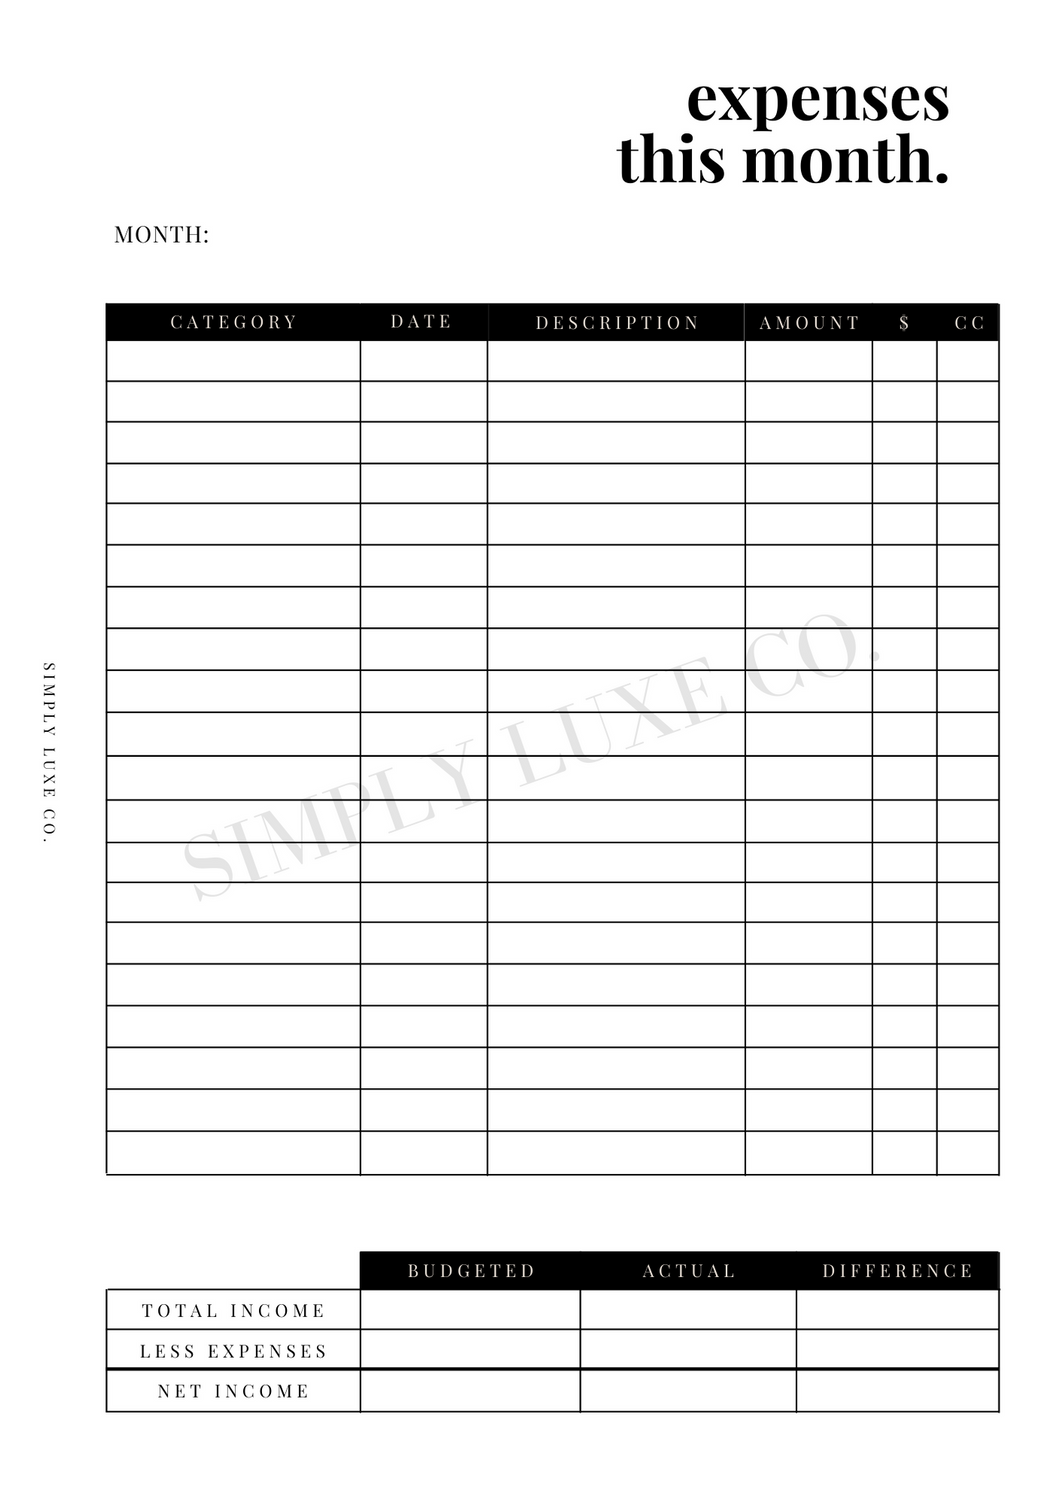 Monthly Expenses Printable Inserts (NEW design)